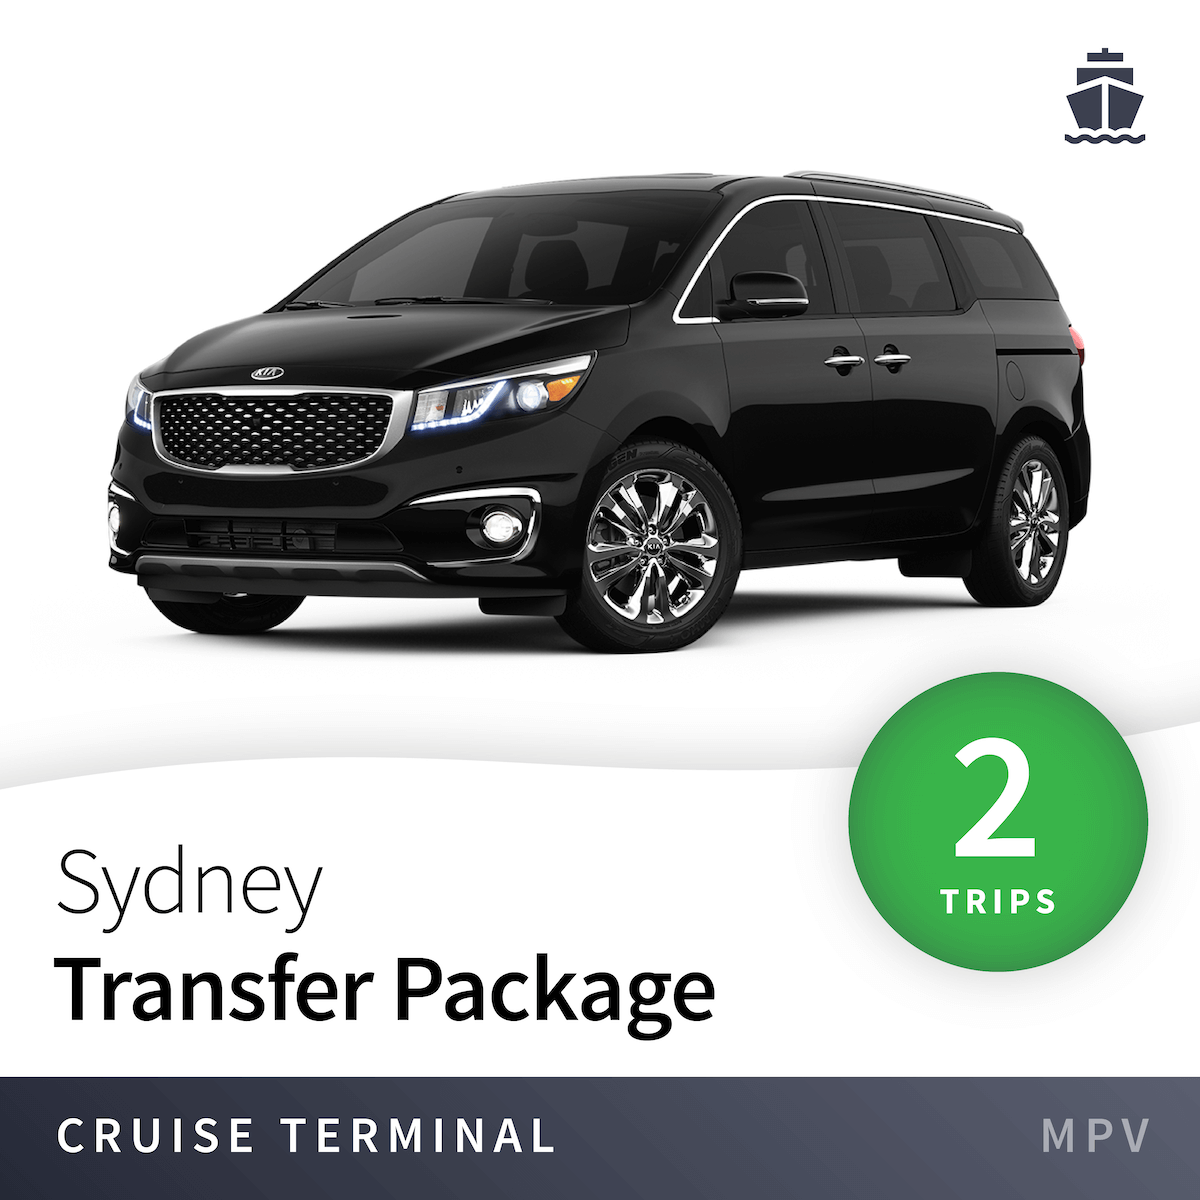 Sydney Cruise Terminal Transfer Package - MPV (2 Trips) 20